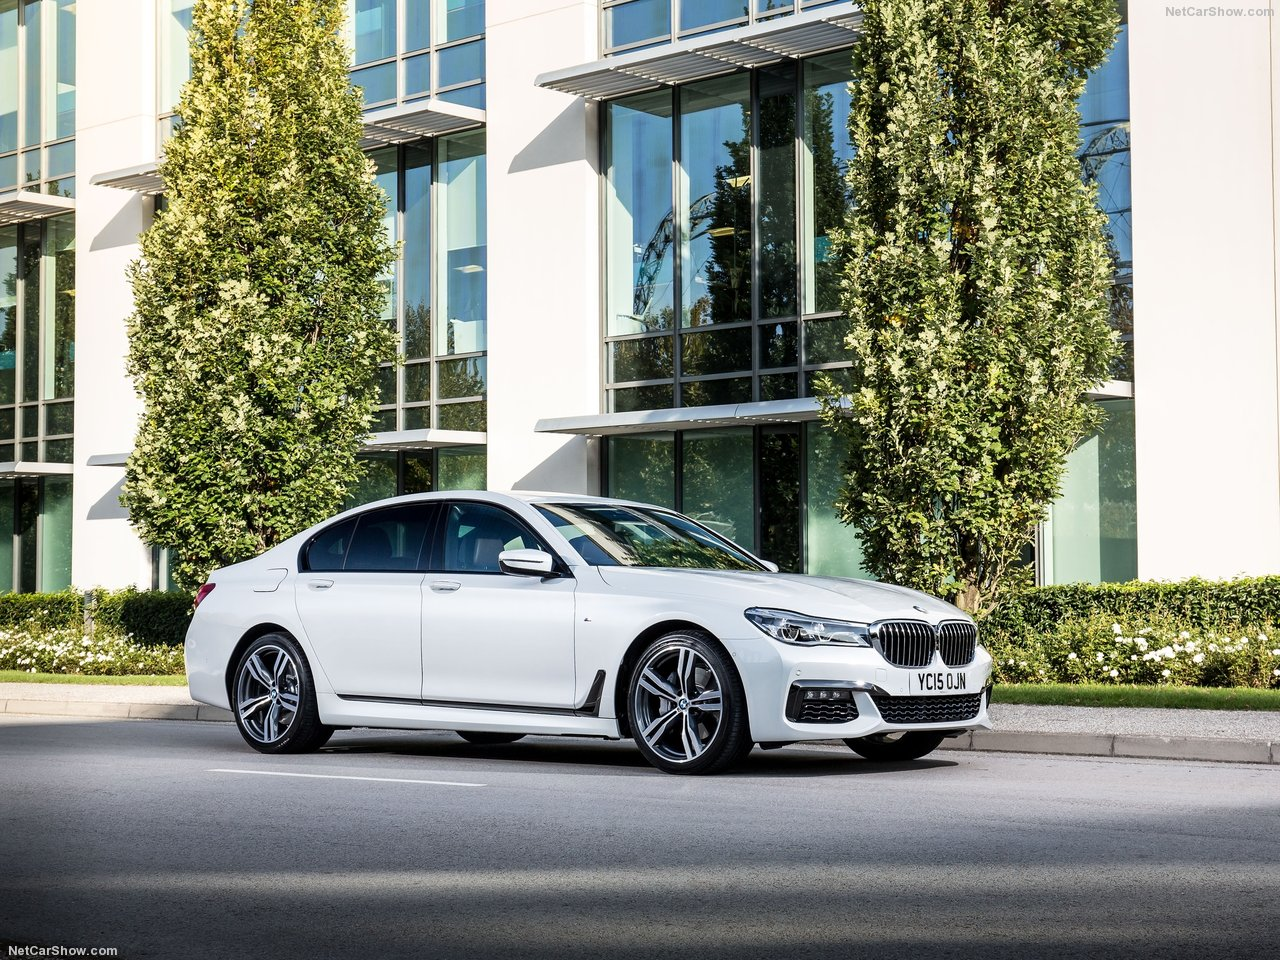 BMW 7-series photo 151919